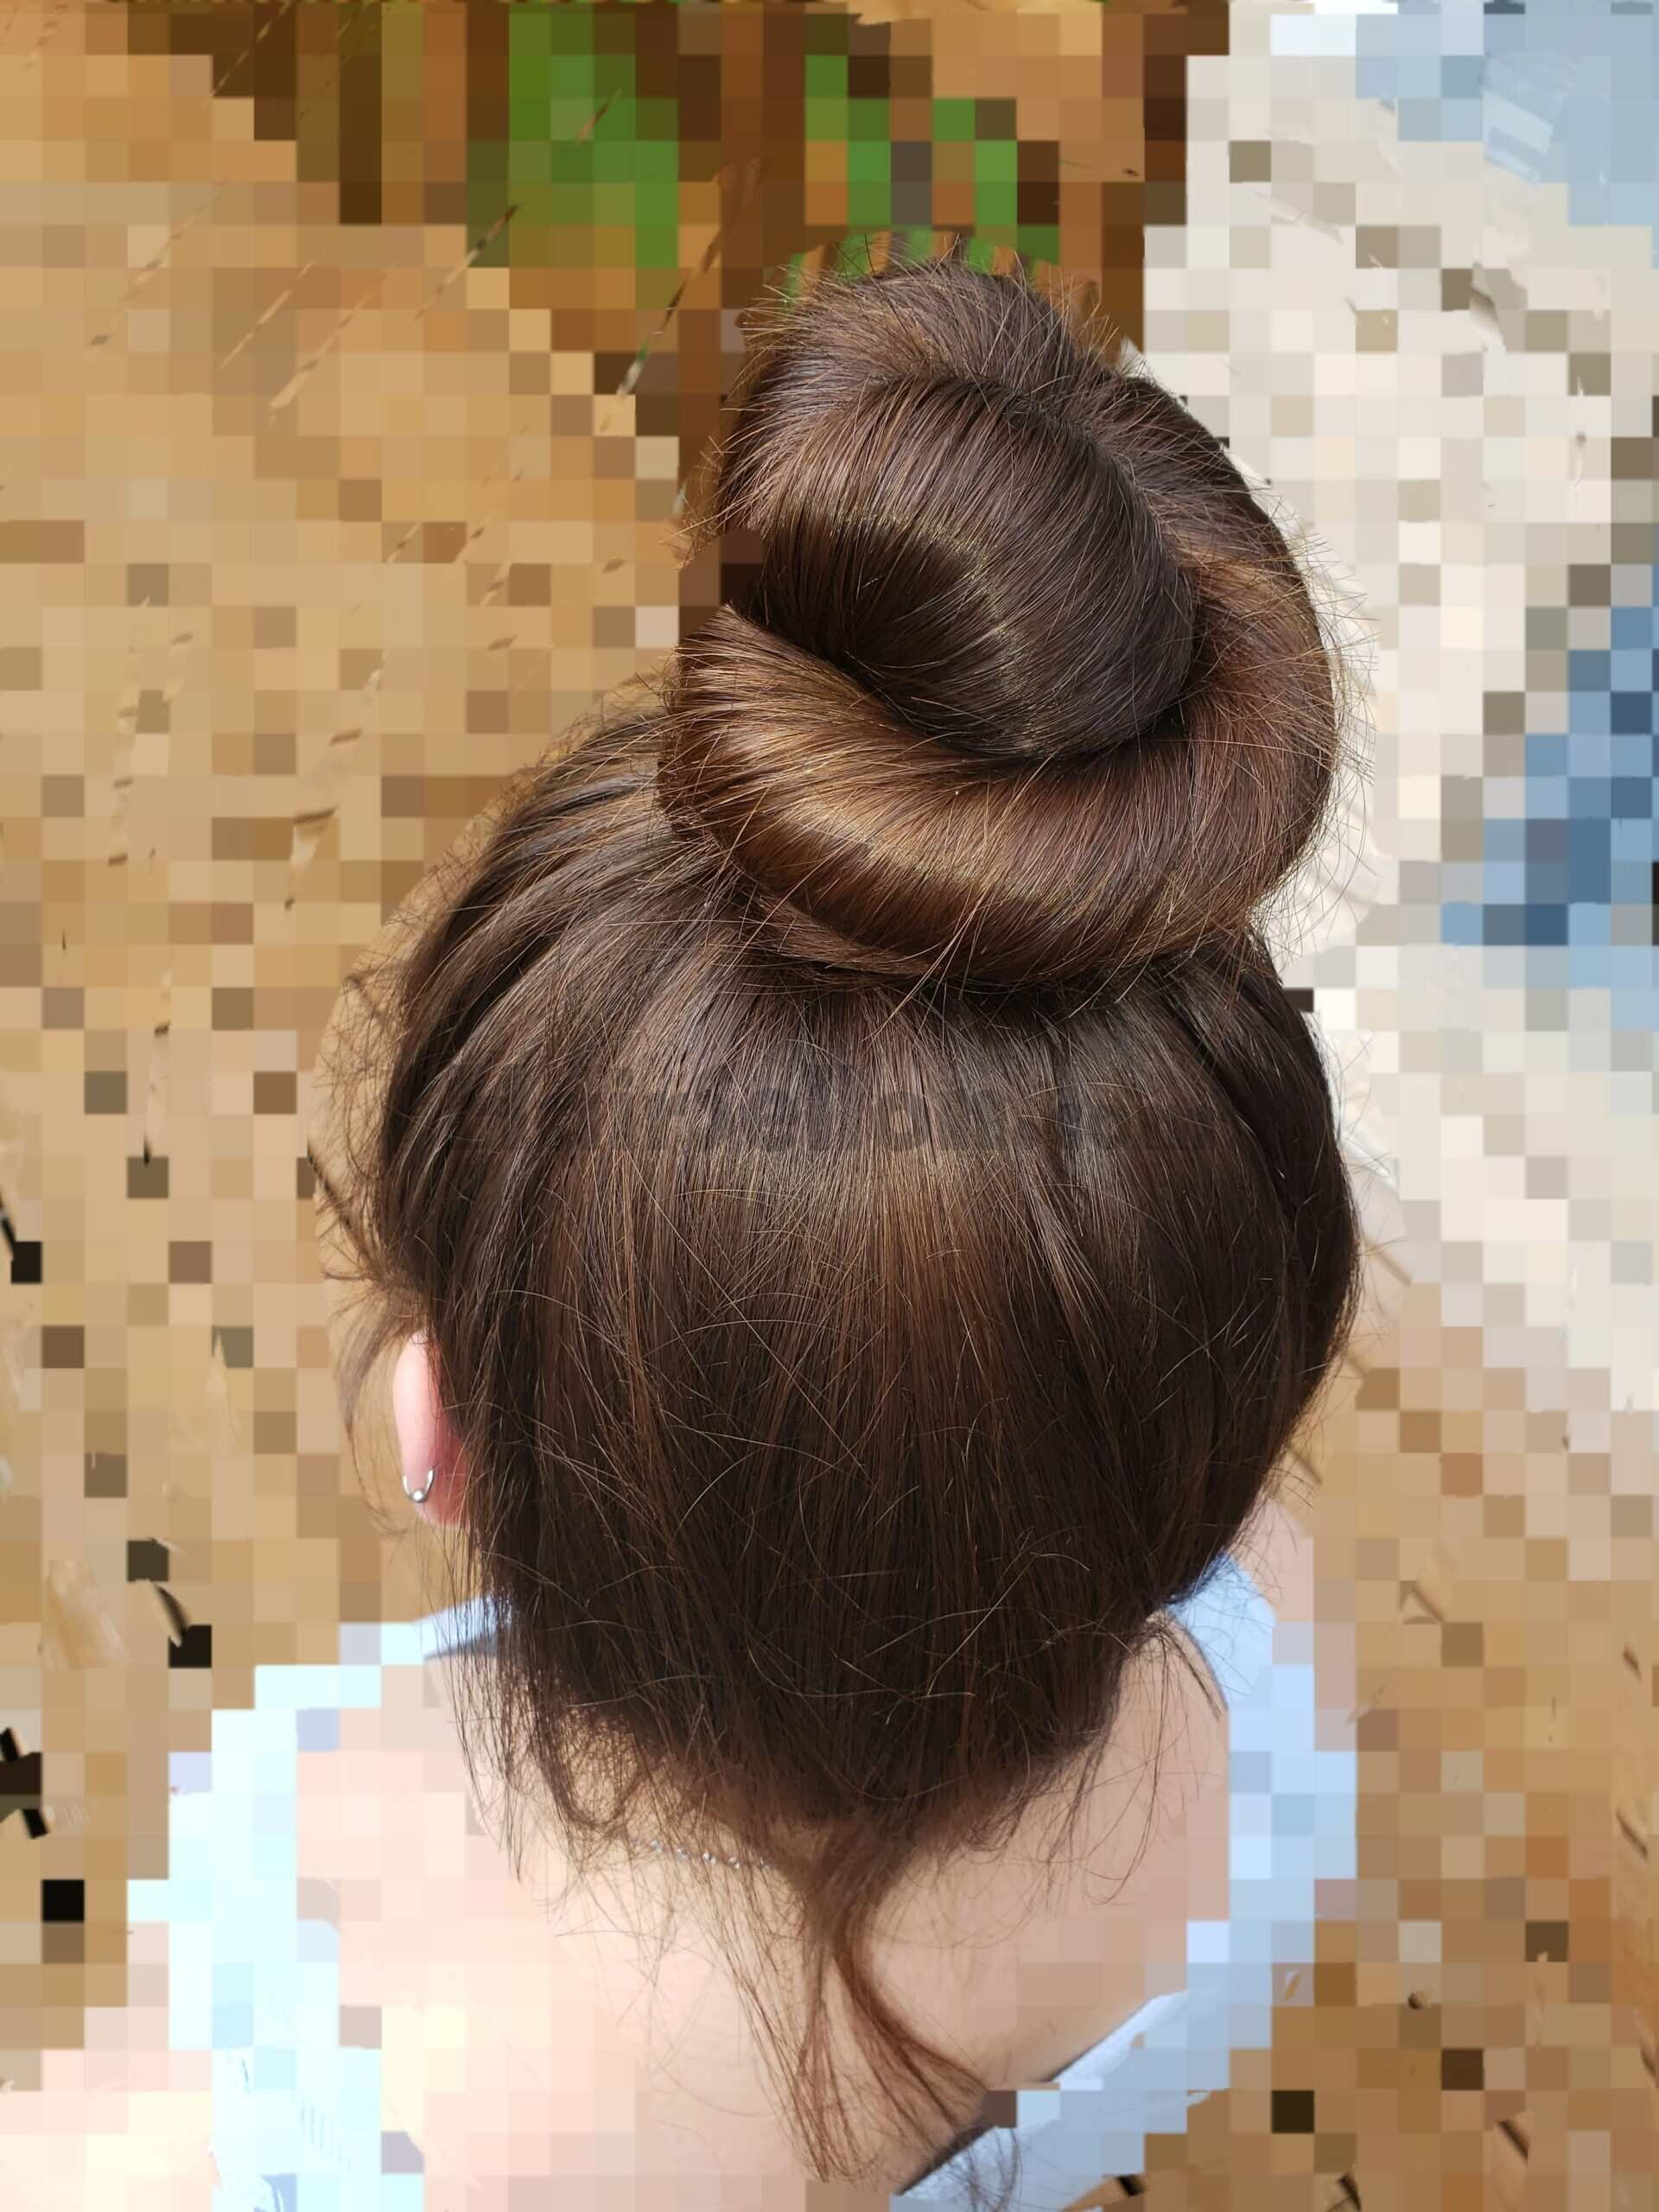 hair in bun-min